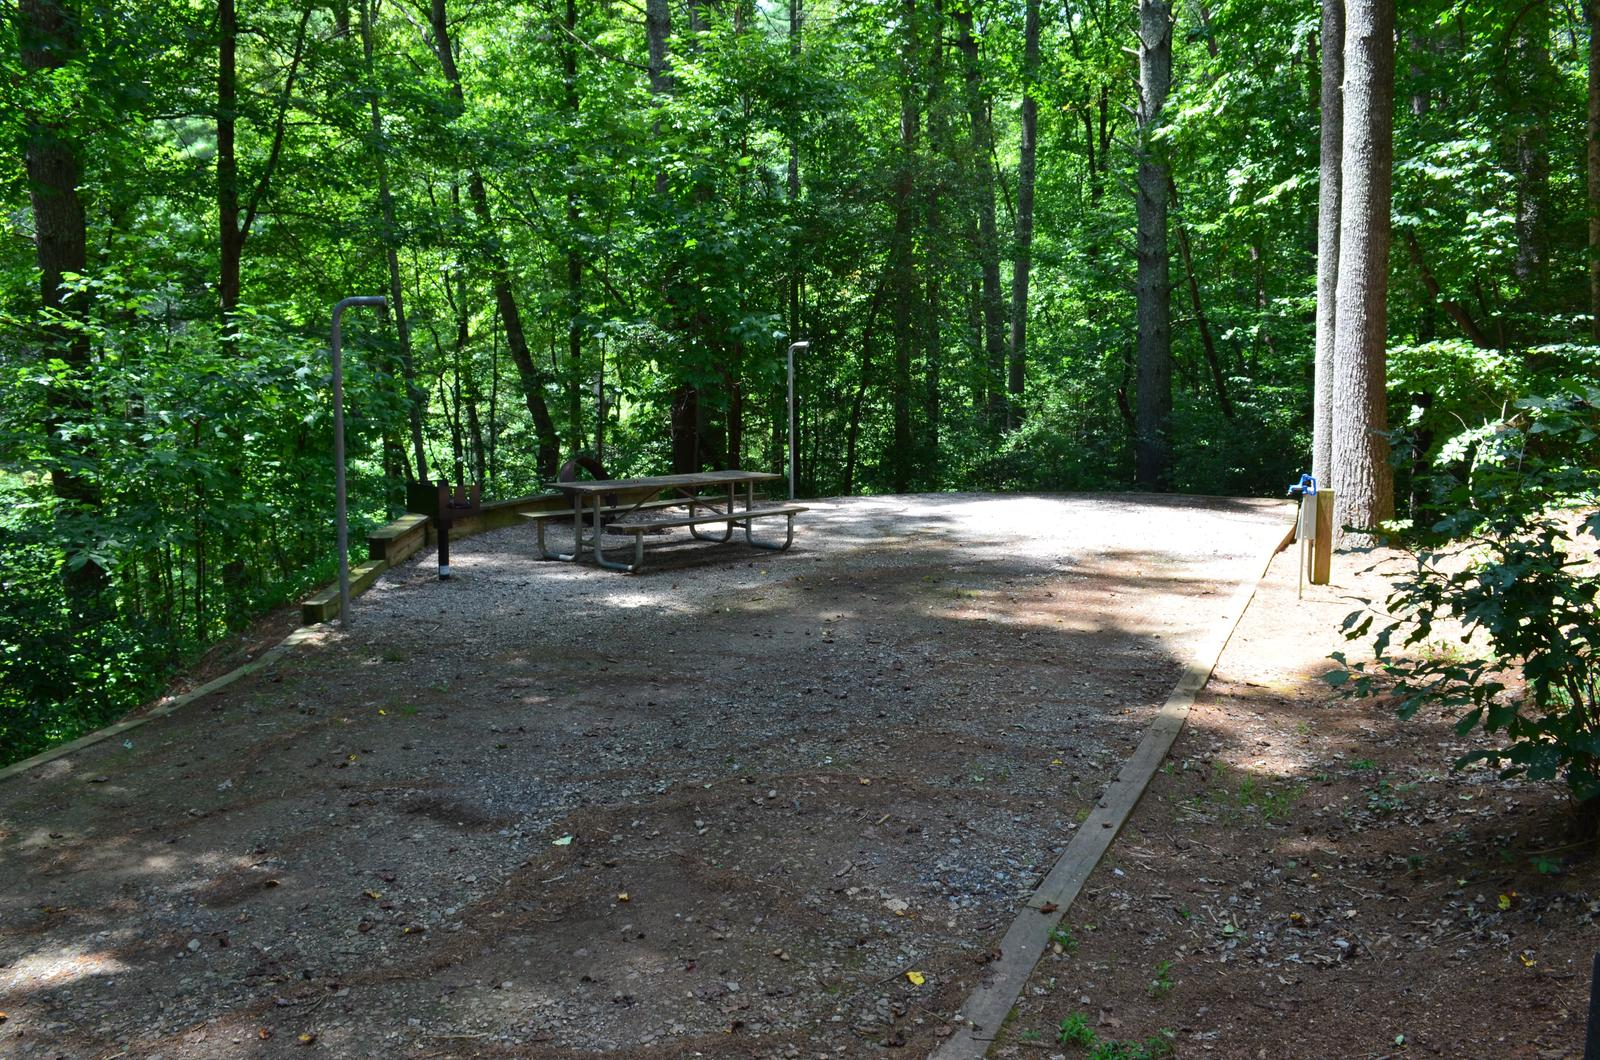 Long gravel site with table, grill, fire pit, surrounded by trees Gravel site with fire pit, table, grill